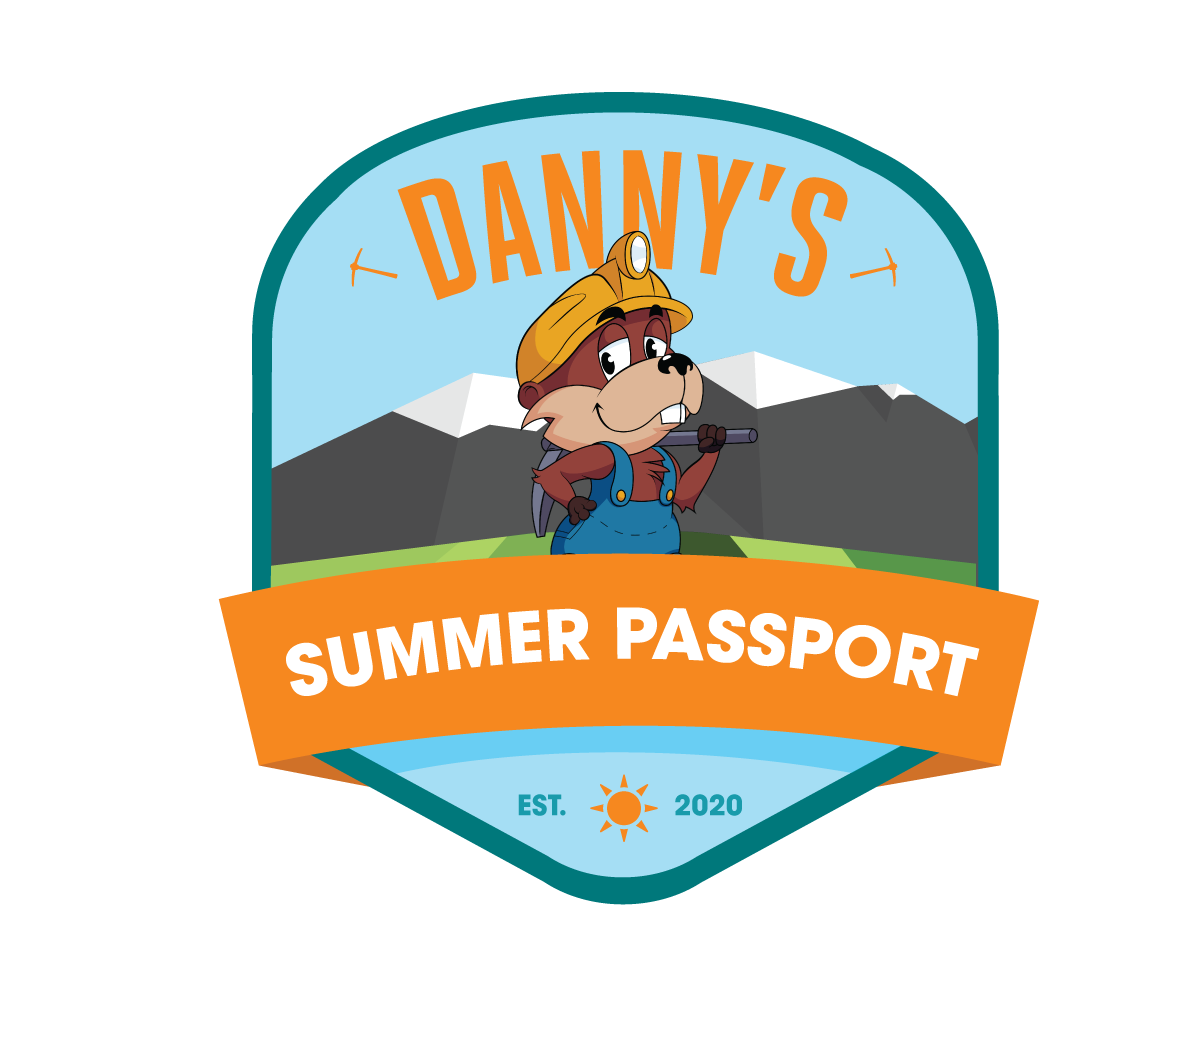 Danny passport badge-02 (002)